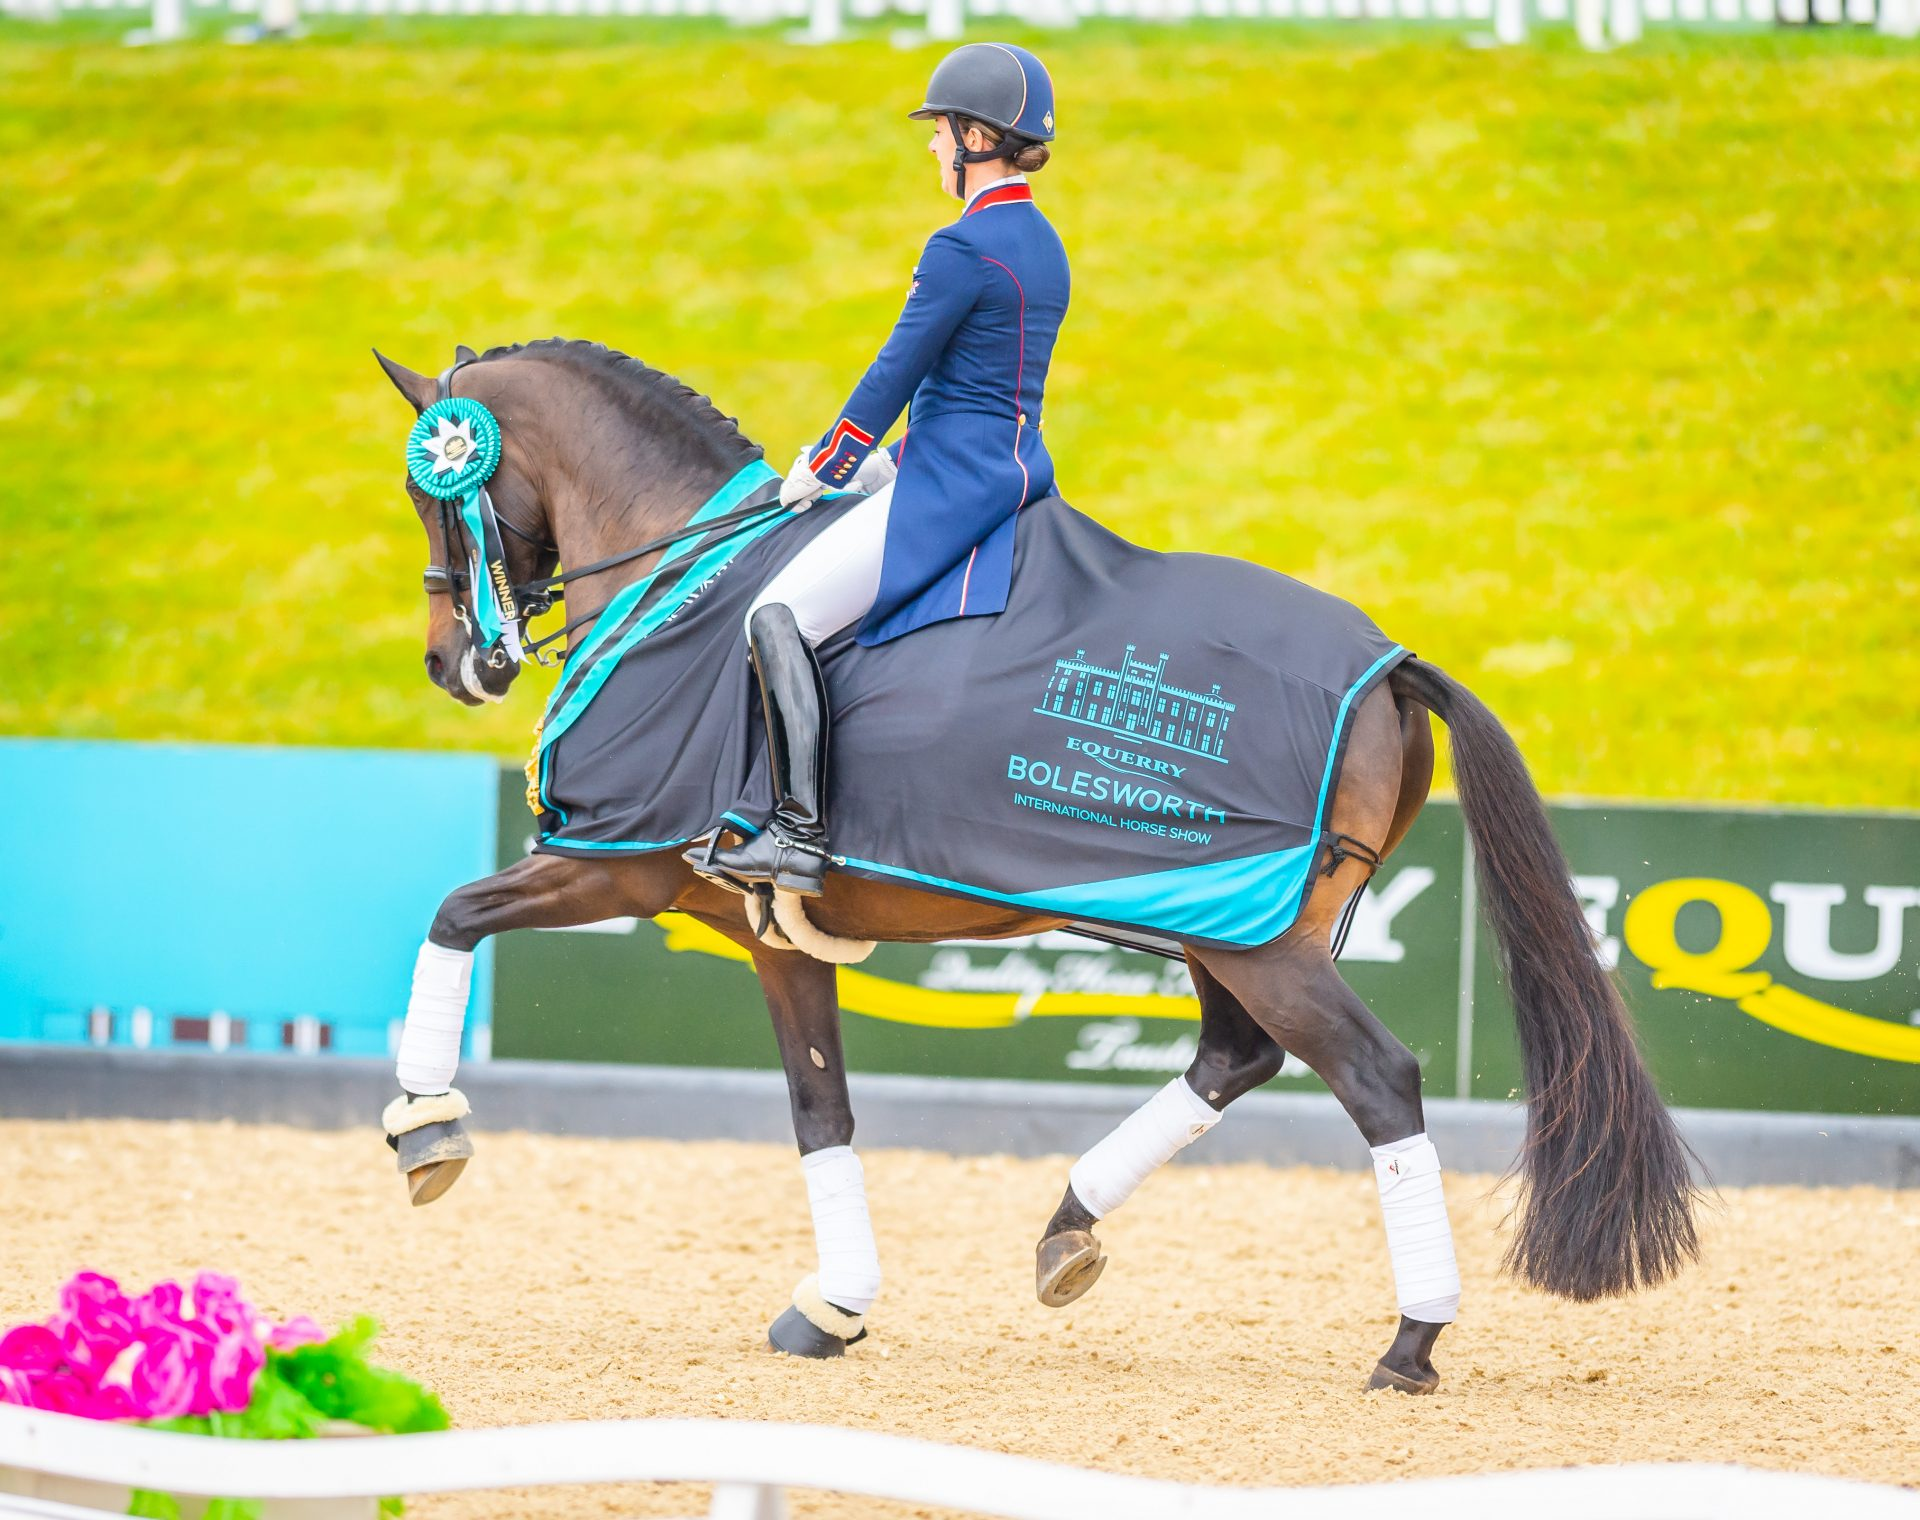 Bolesworth - To Be Brave, Be Different, Be Passionate